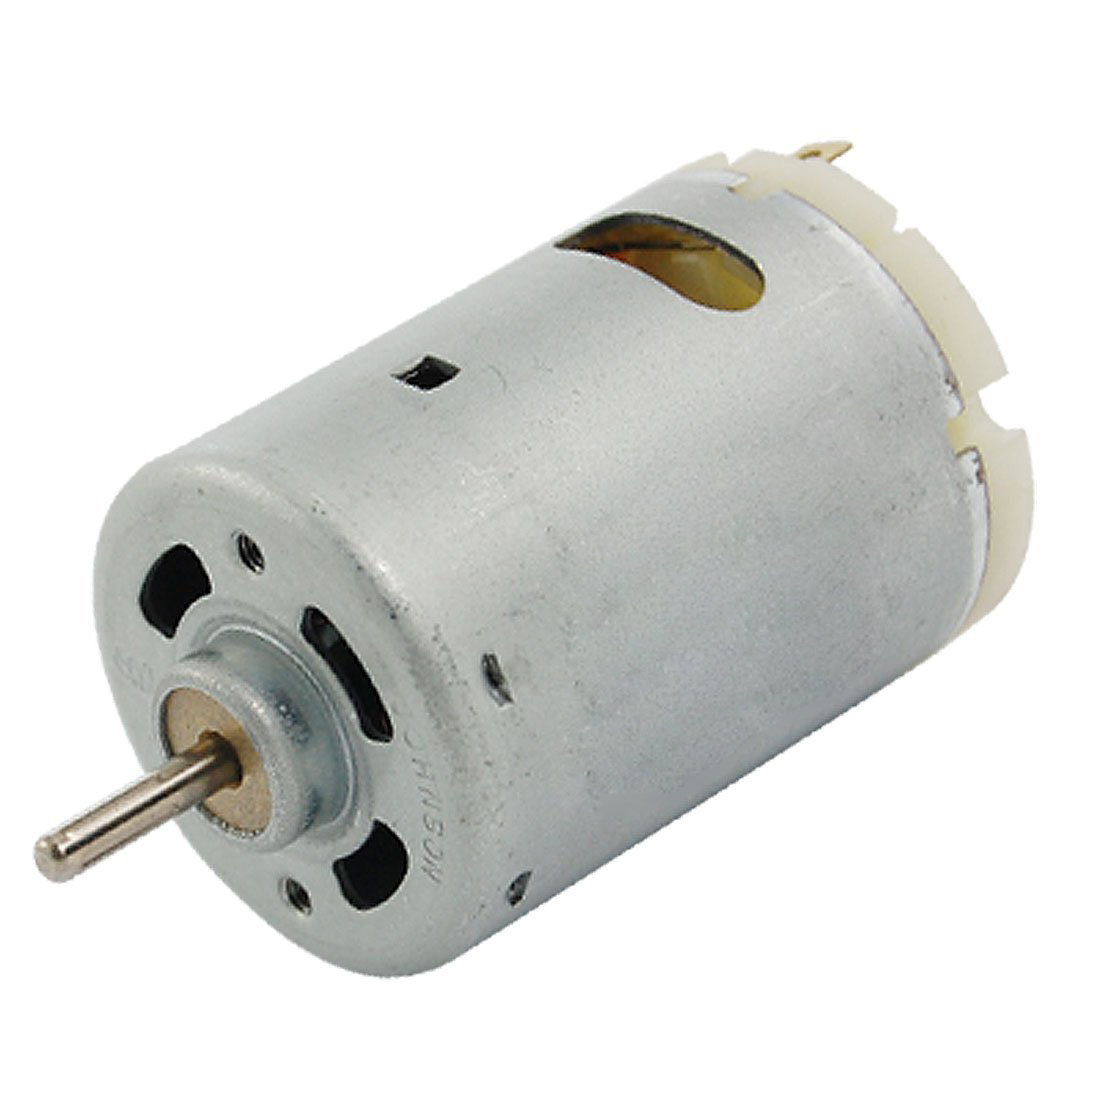 Dc 12v 1 1 2a 15000rpm high torque electric motor for diy for How to make a electric motor